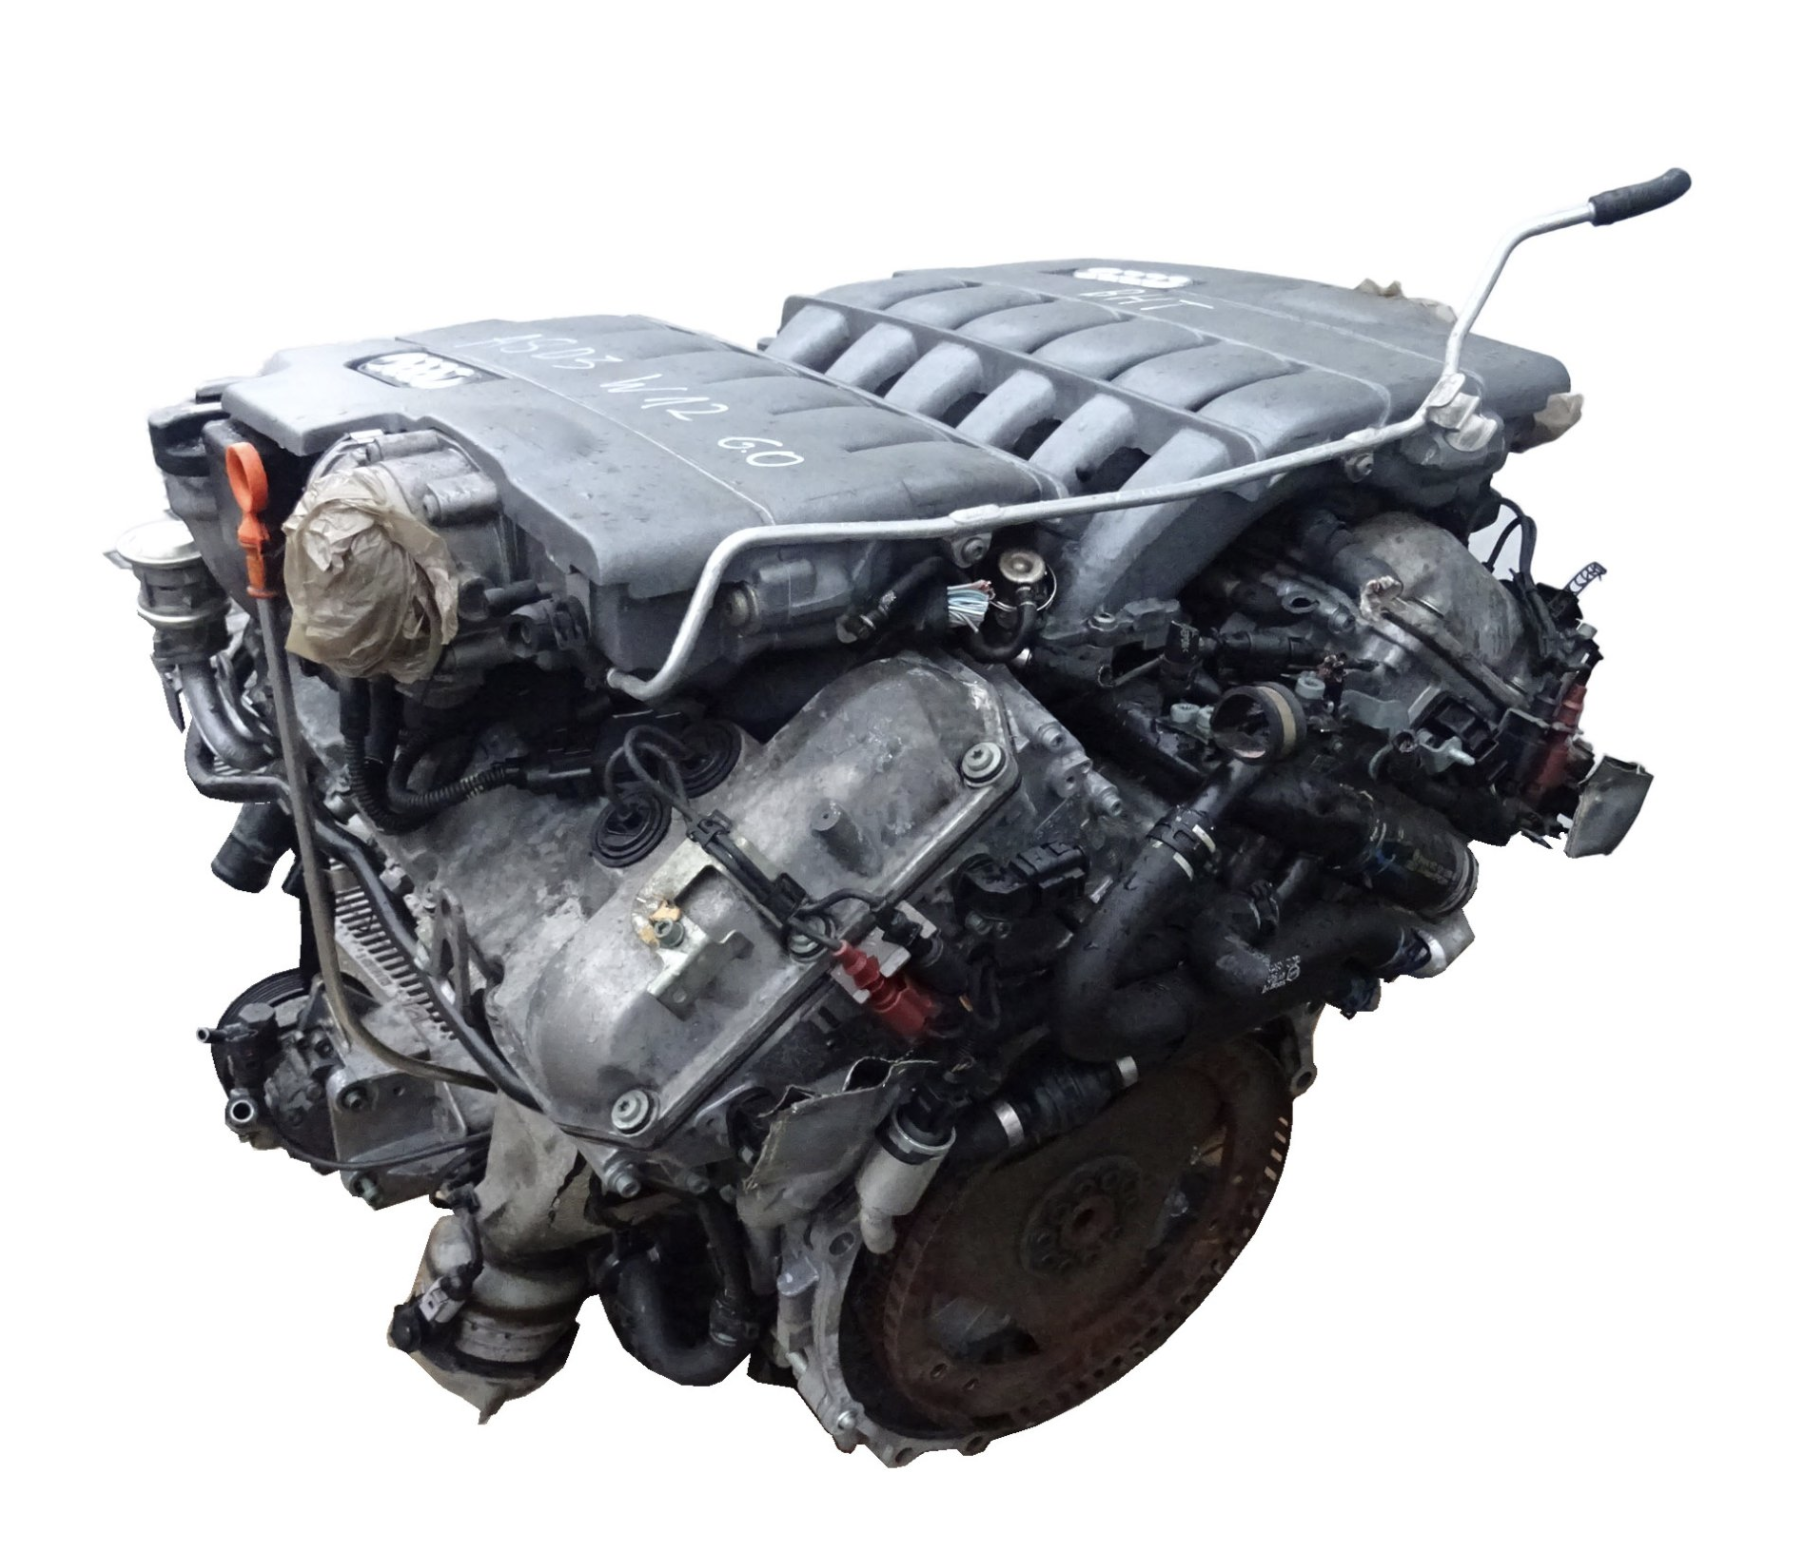 Engine Motor Audi A8 D3 W12 60 Type Bht Sale Auto Spare Part On Harley Motorcycle Drawing Vquad And Method